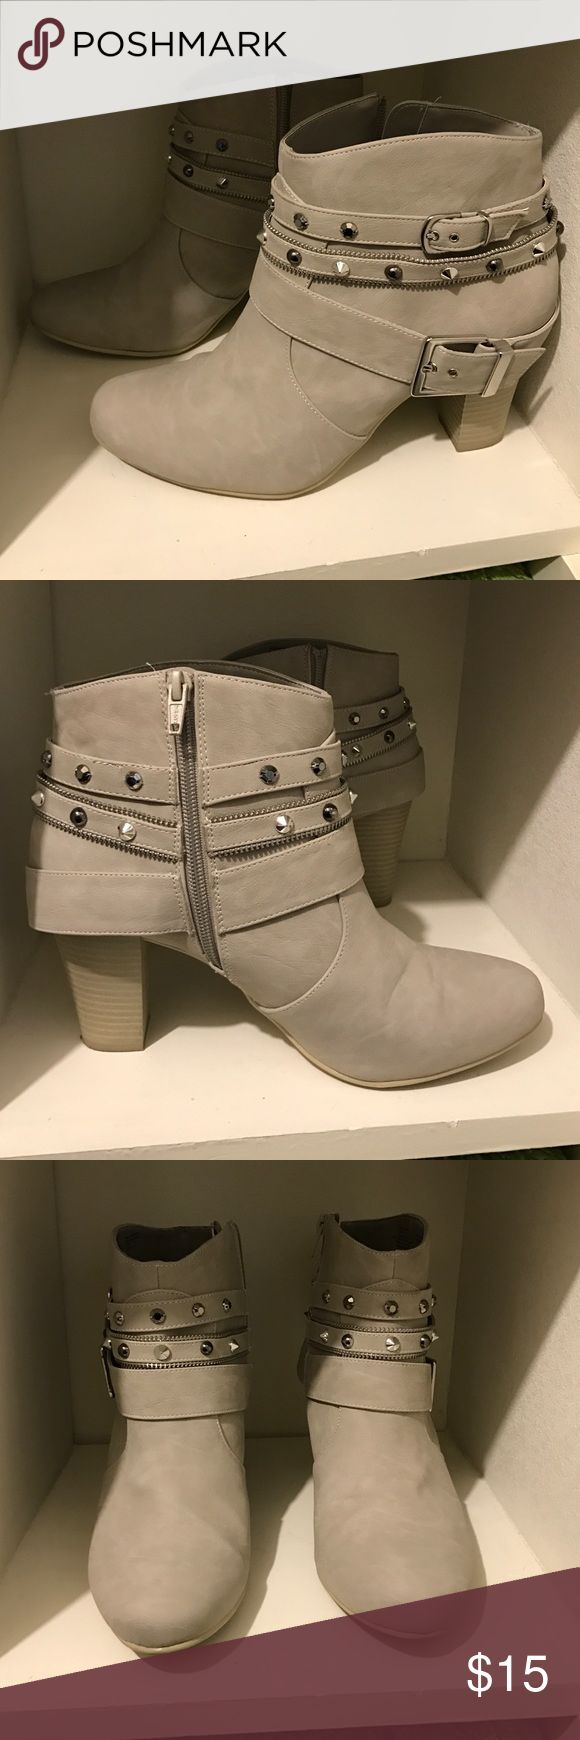 Jennifer Looez booties Light grey color, they might as well be brand new! They are too tight by the toes for me (I'm a size 10) any questions, just ask! Jennifer Lopez Shoes Ankle Boots & Booties